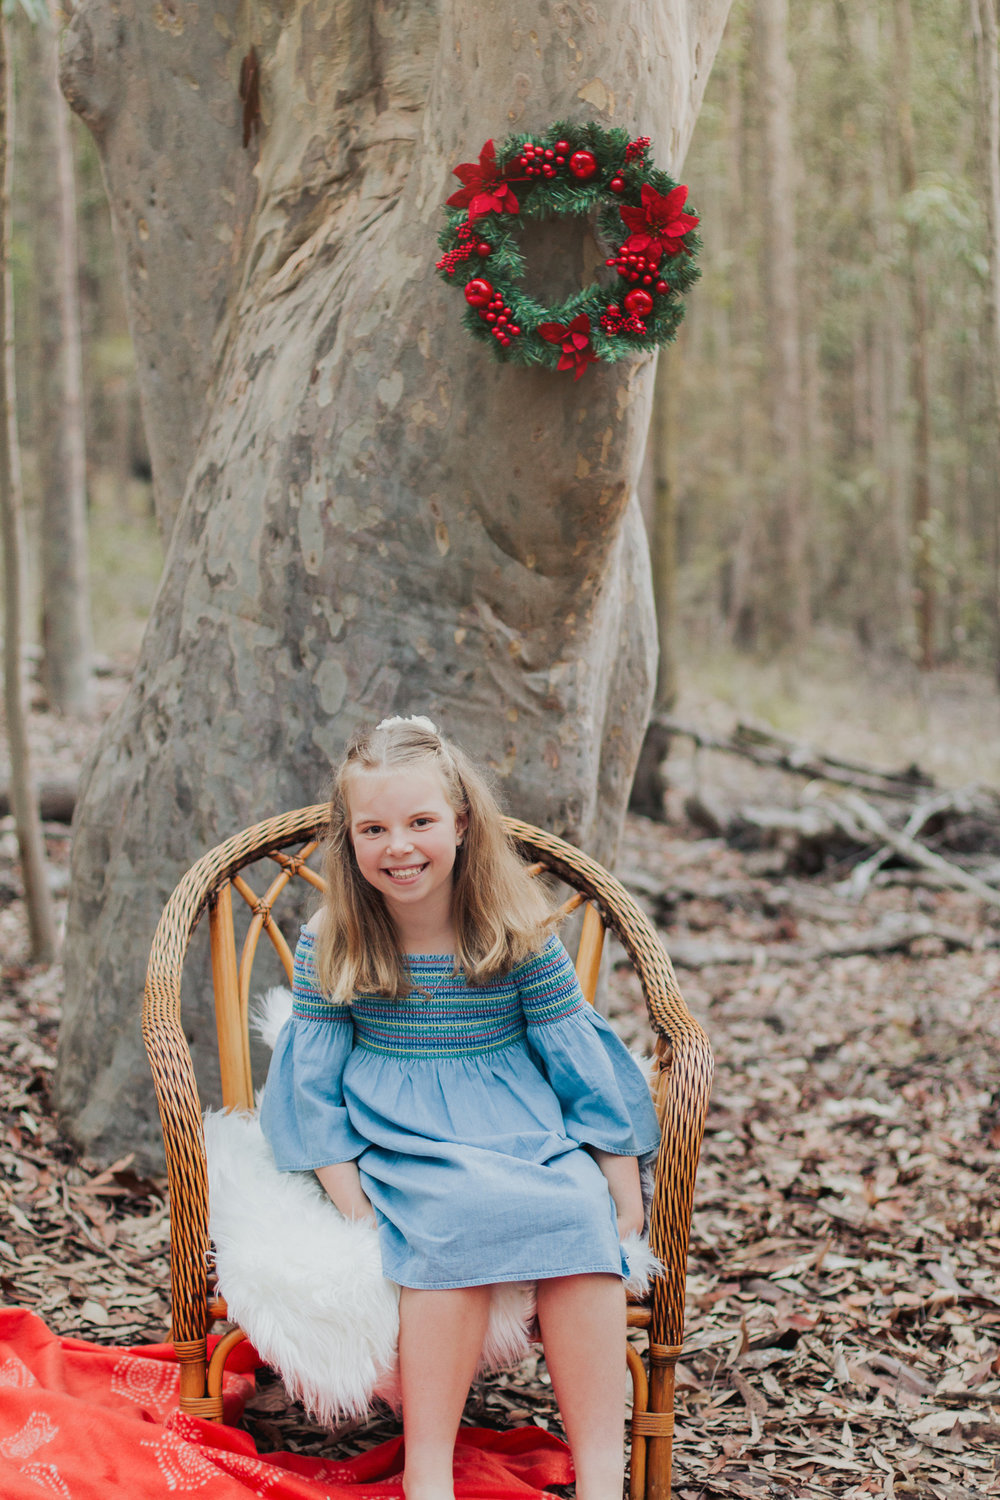 girl-sitting-in-chair-with-wreath